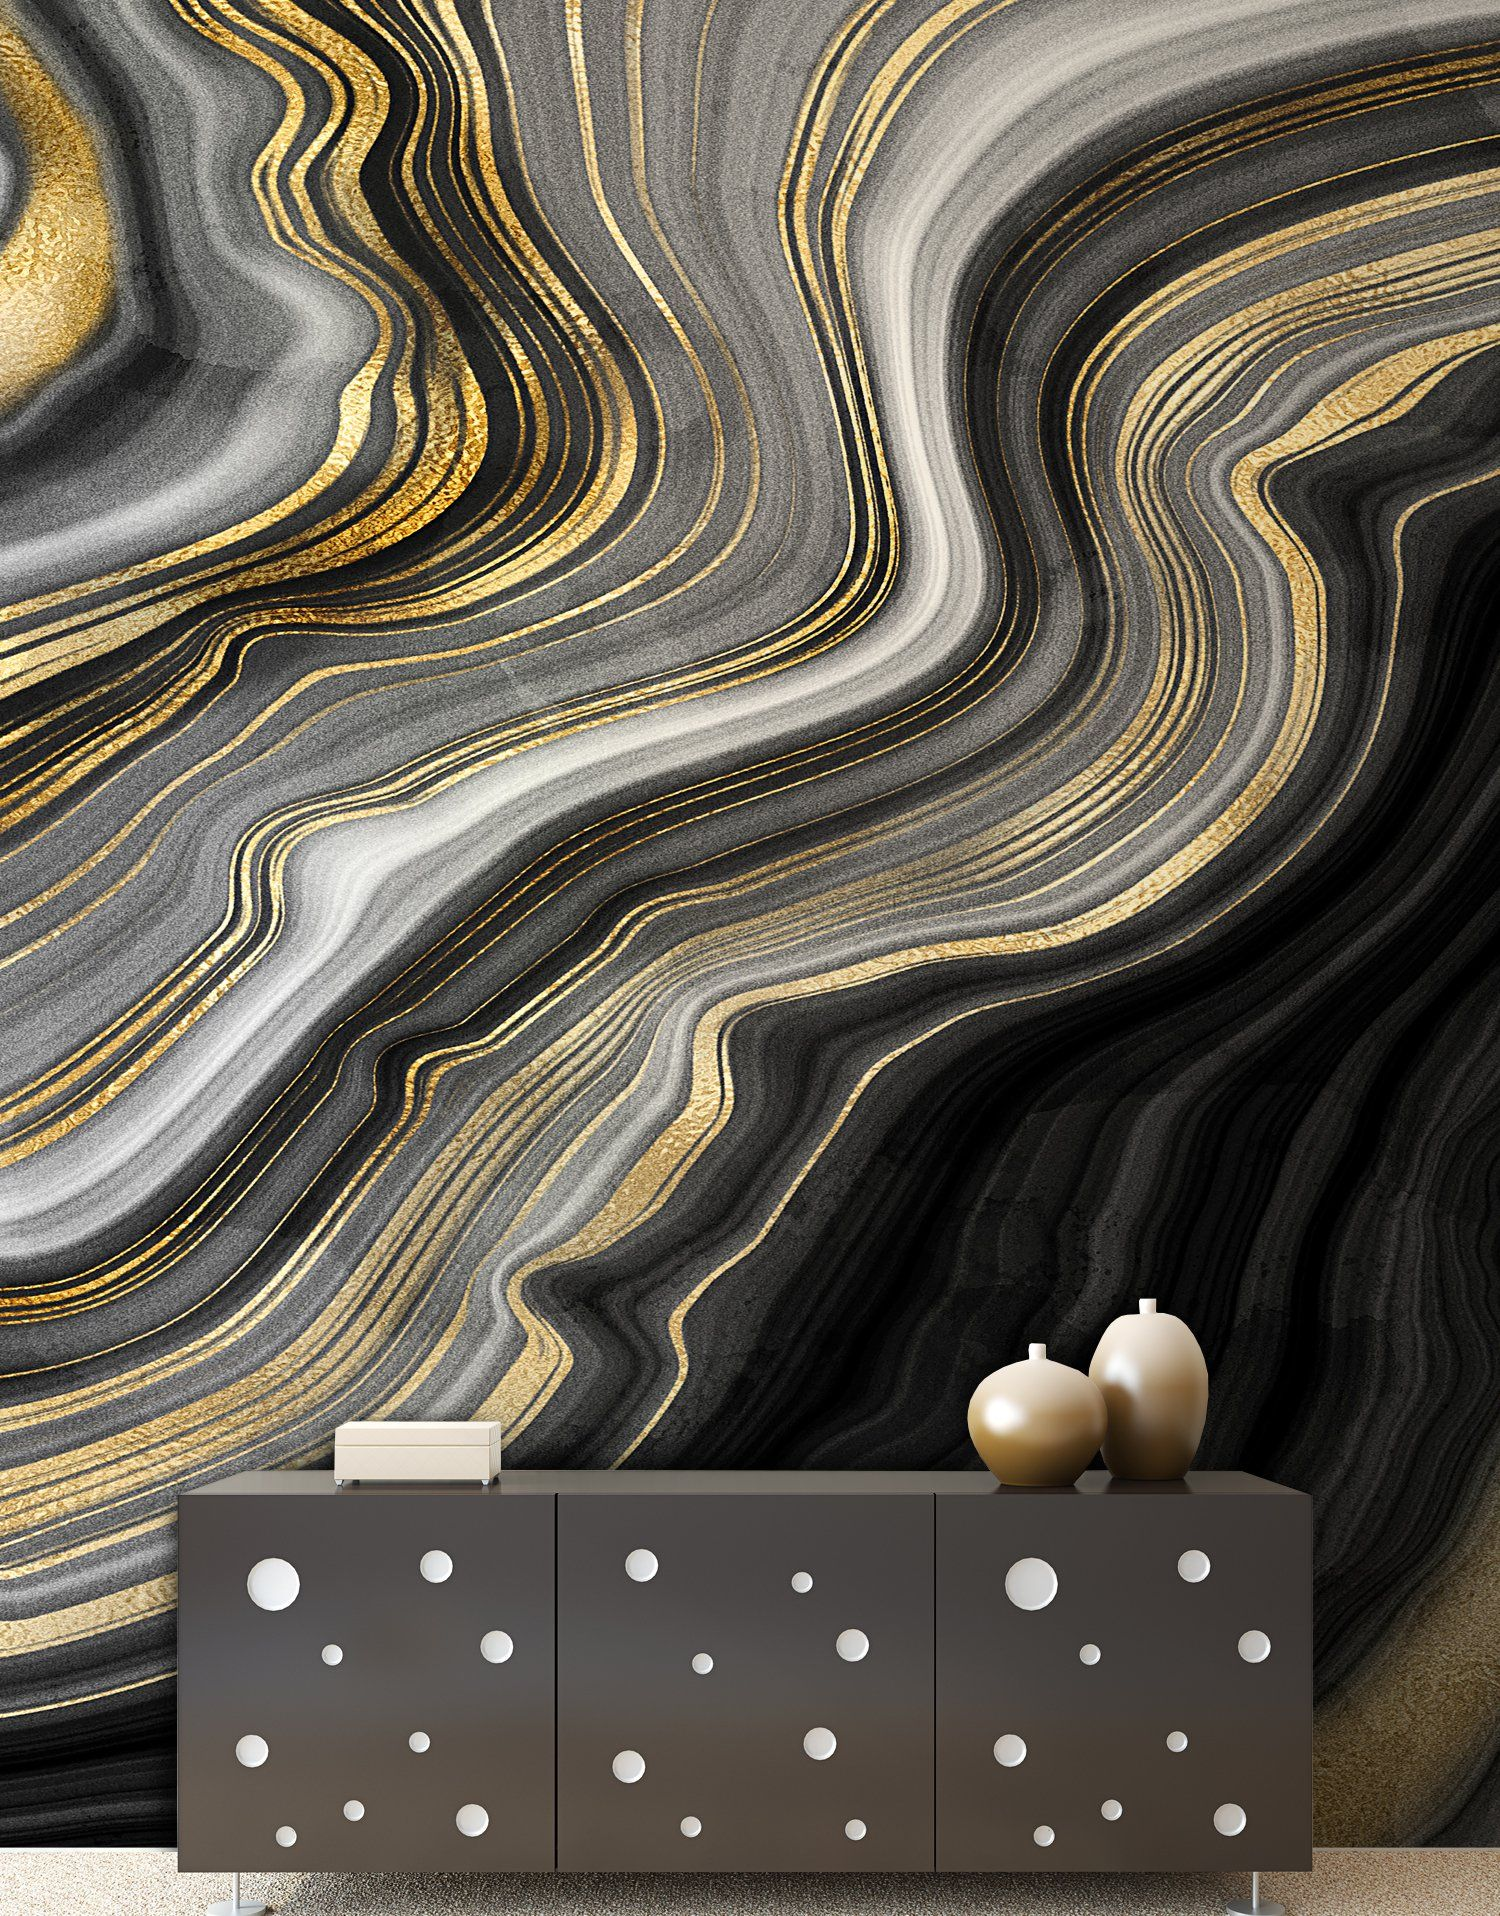 Black And Gold Abstract Marble Stone Pattern Wall Mural 6146 Wall Murals Wall Patterns Gold Painted Walls